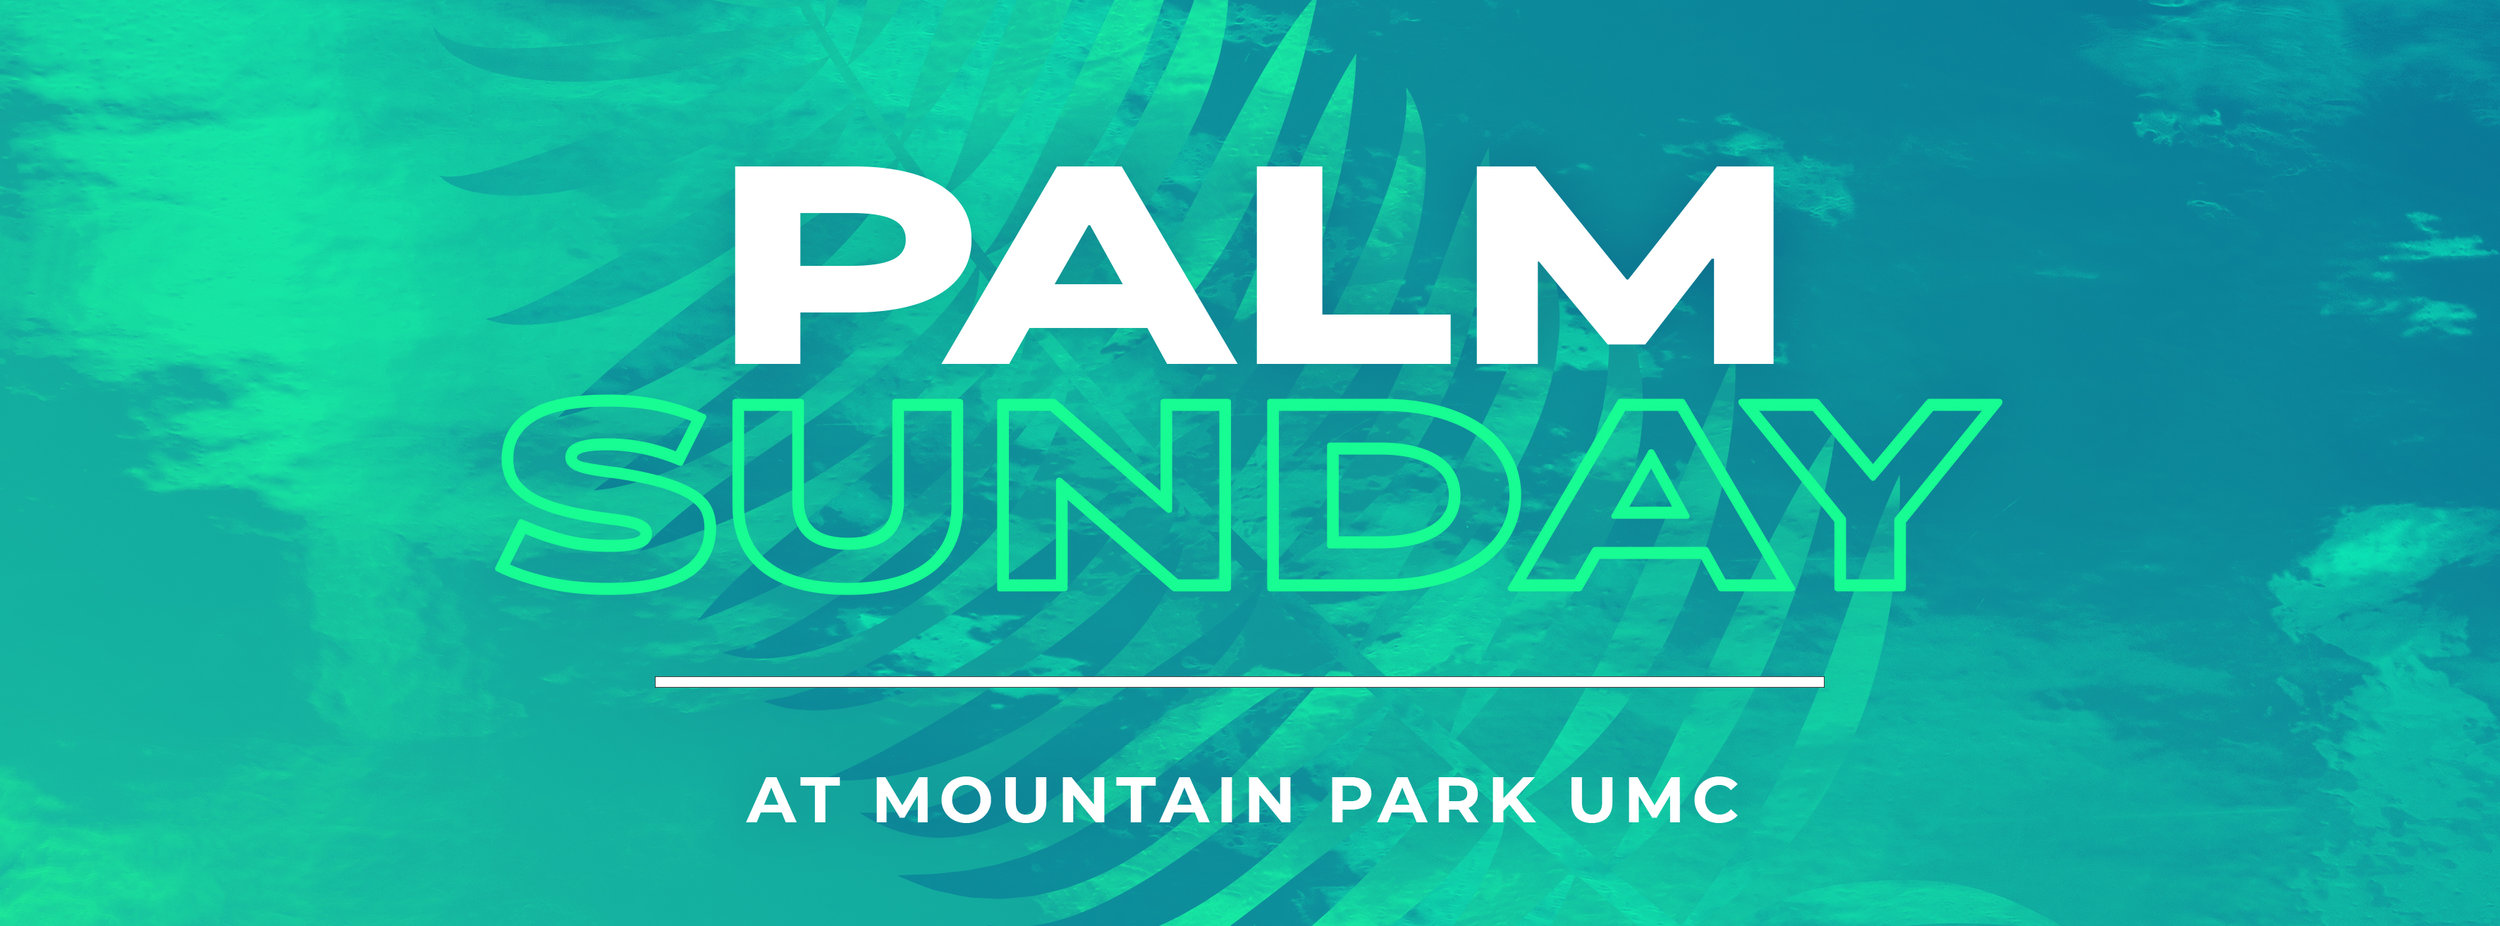 MPUMC Palm Sunday 2019_fb coverphoto.jpg